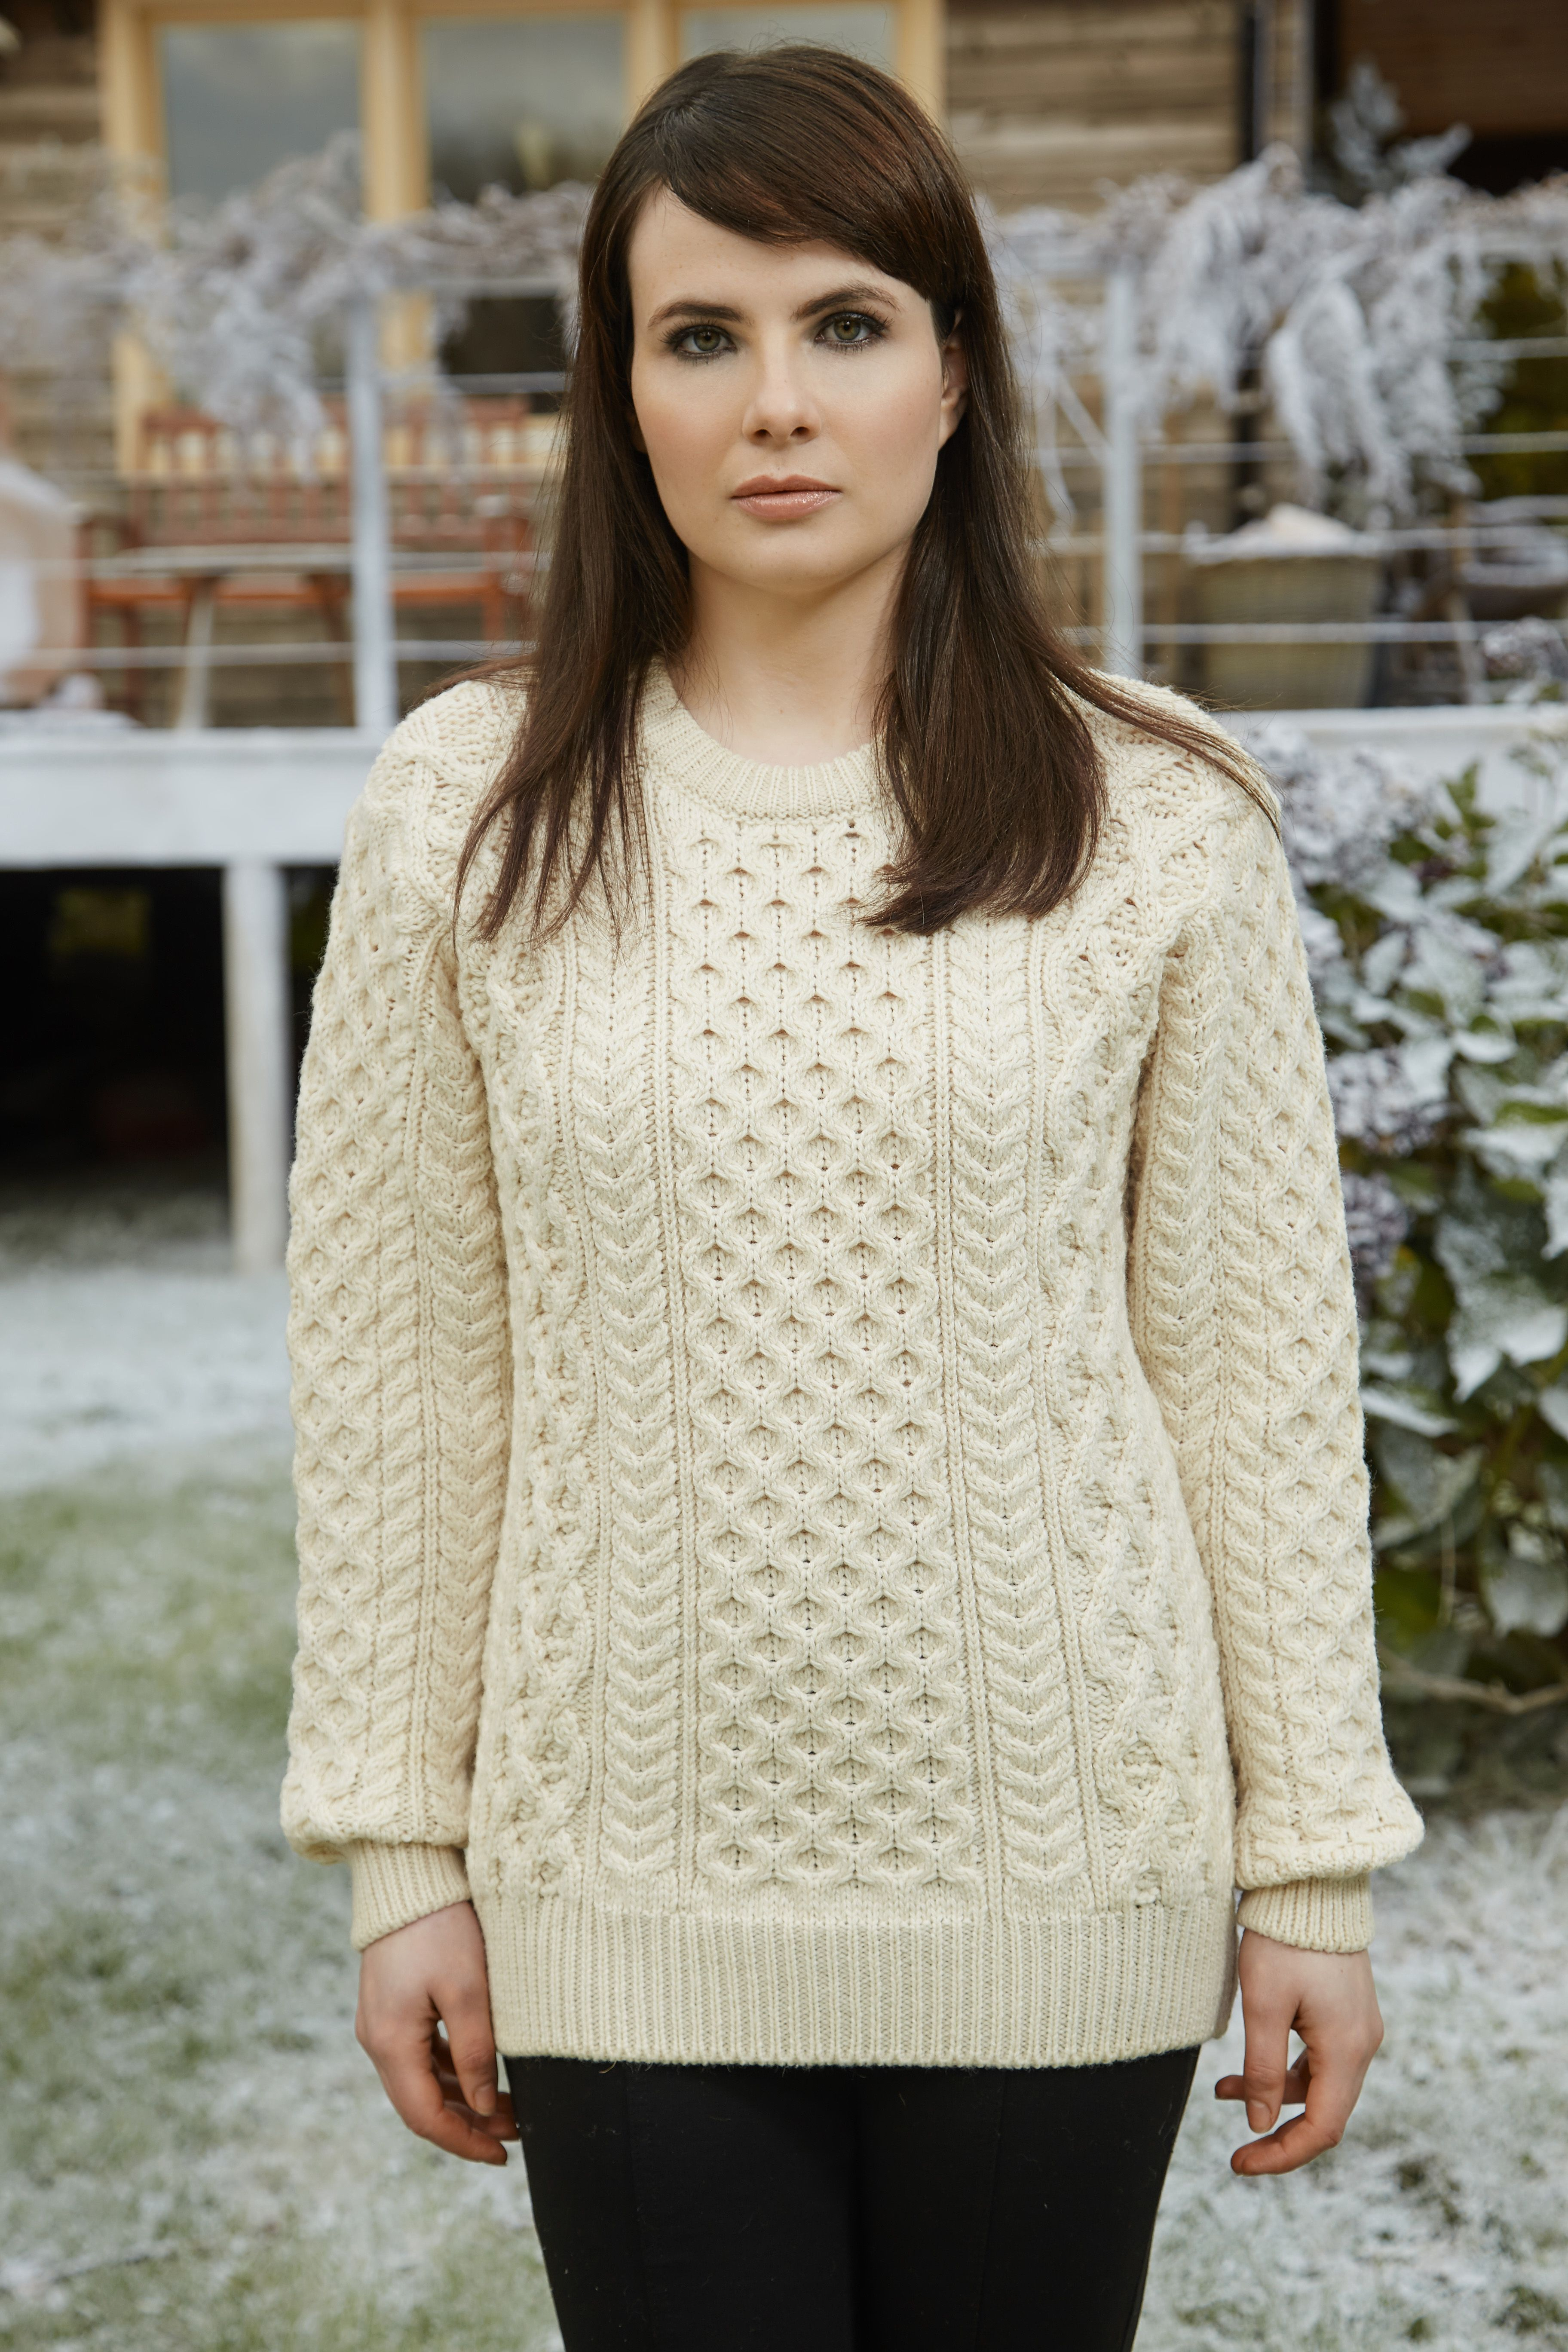 Heavyweight merino wool aran sweater this merino wool aran sweater the cable stitches have been knit in a unique way to highlight the aran stitch patterns bankloansurffo Gallery